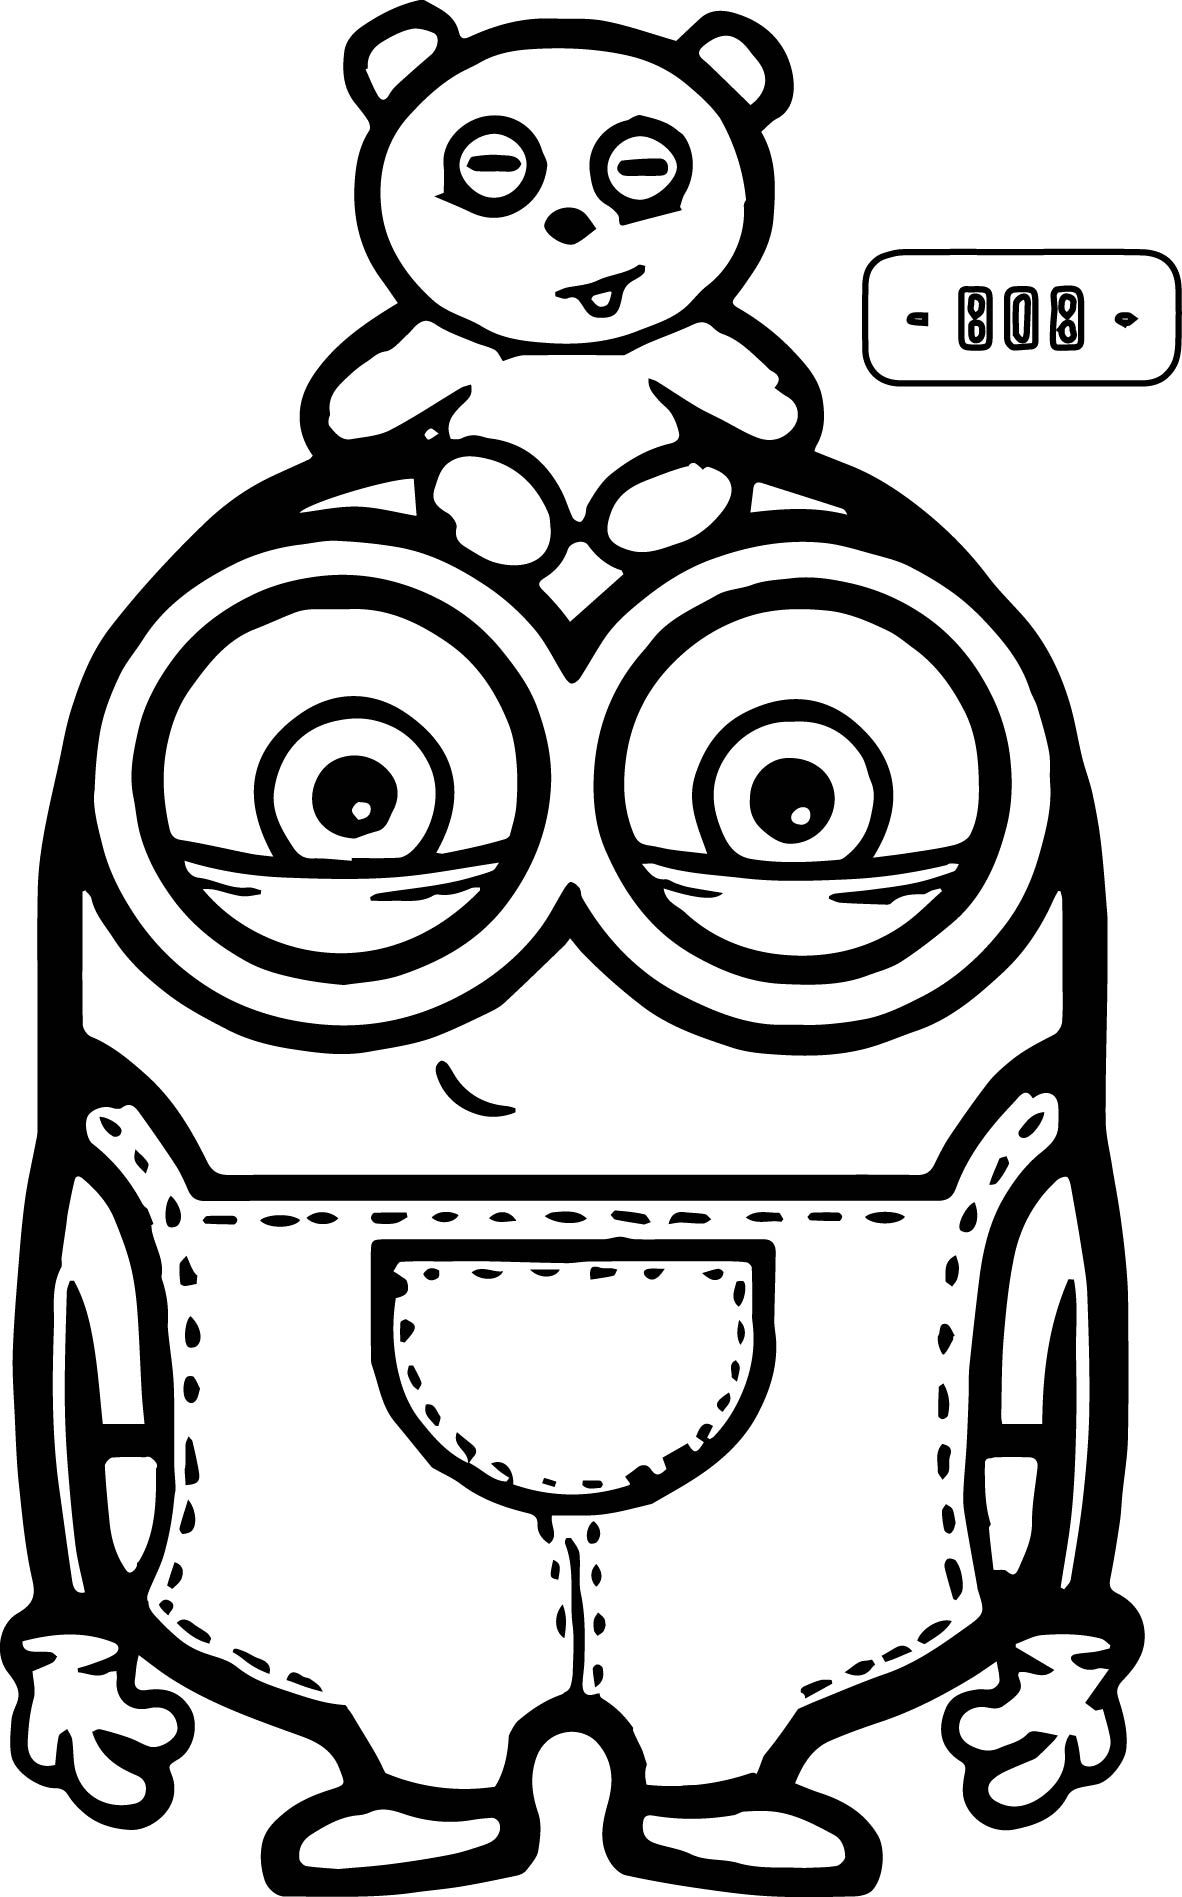 Cute Bob And Bear Minions Coloring Page Minion Coloring Pages Minions Coloring Pages Cute Coloring Pages